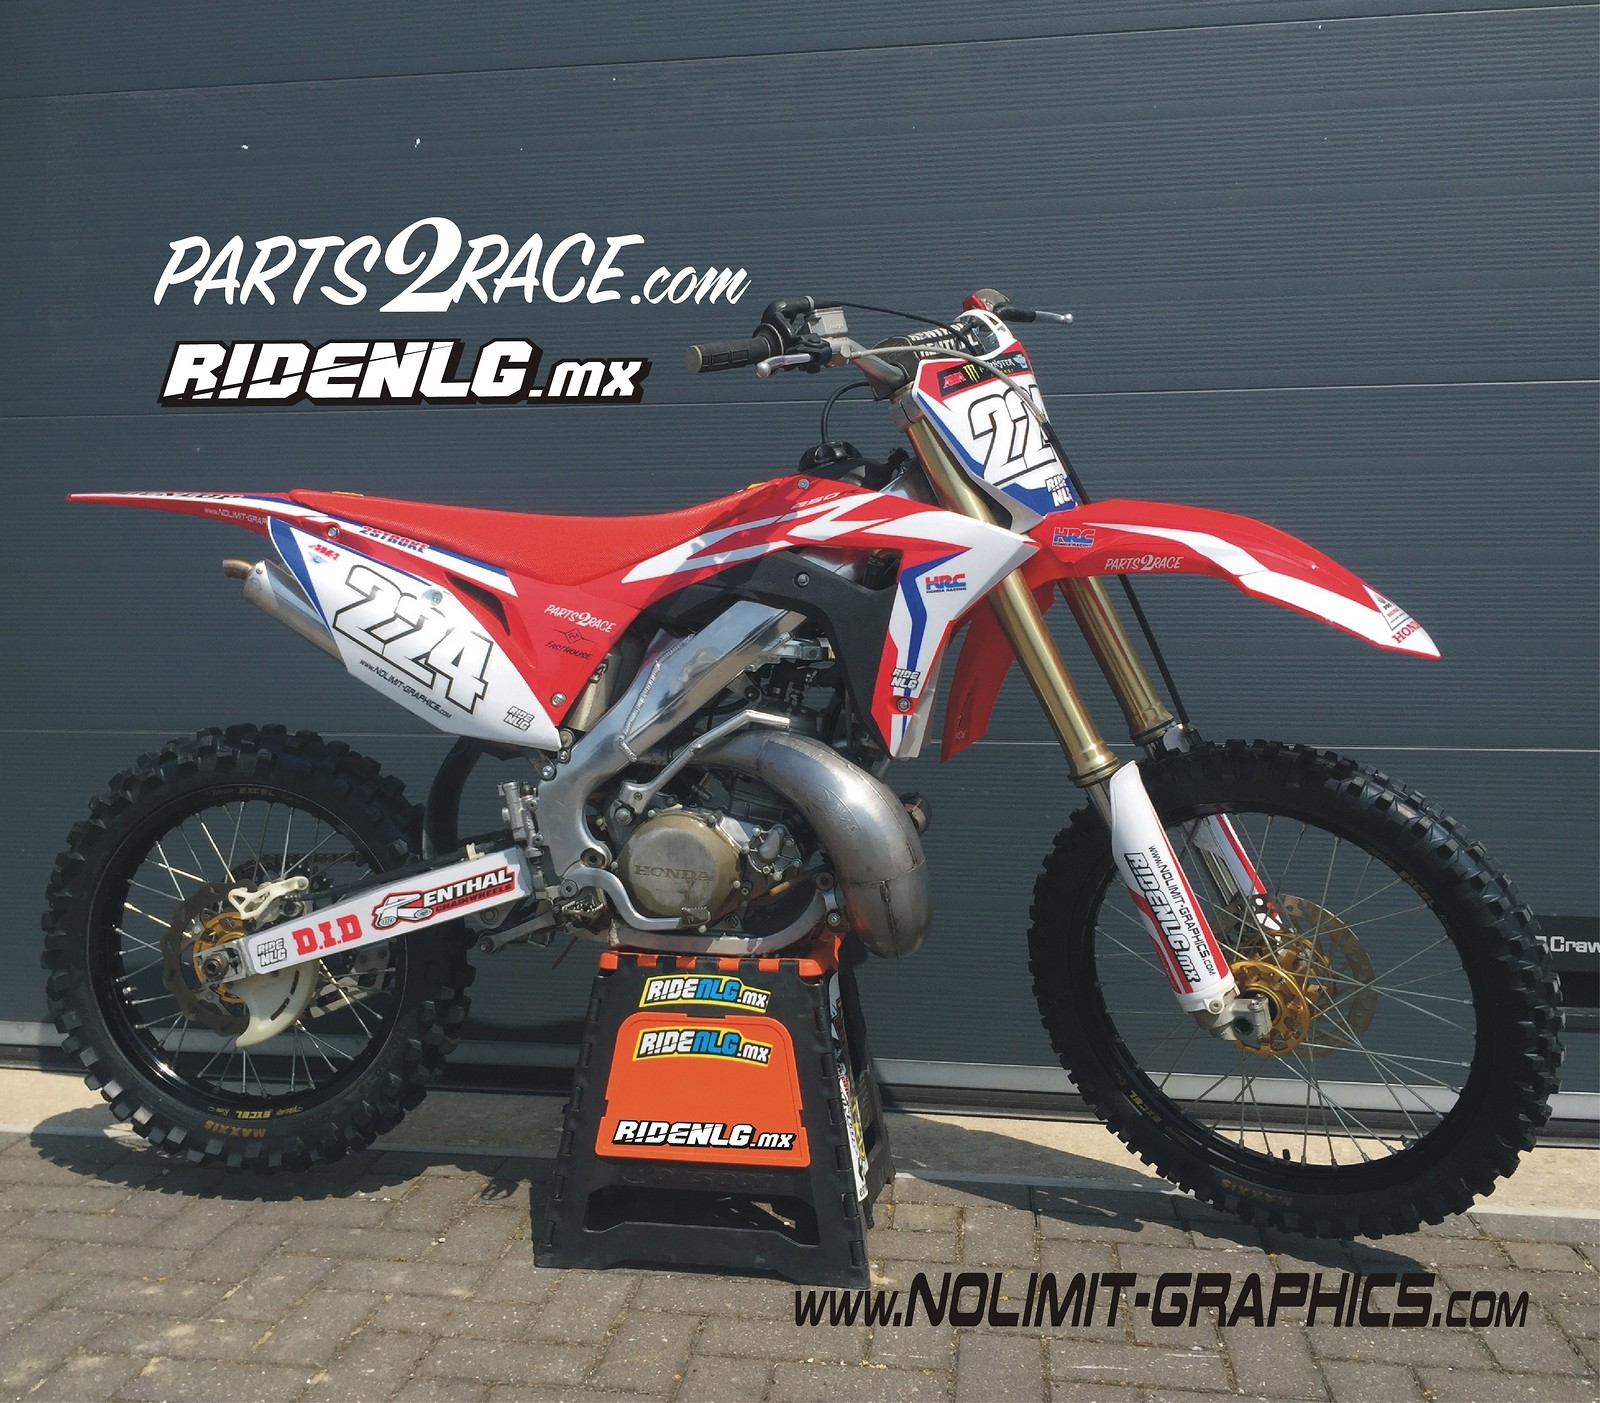 cr250 04 -17 crf450 plastics